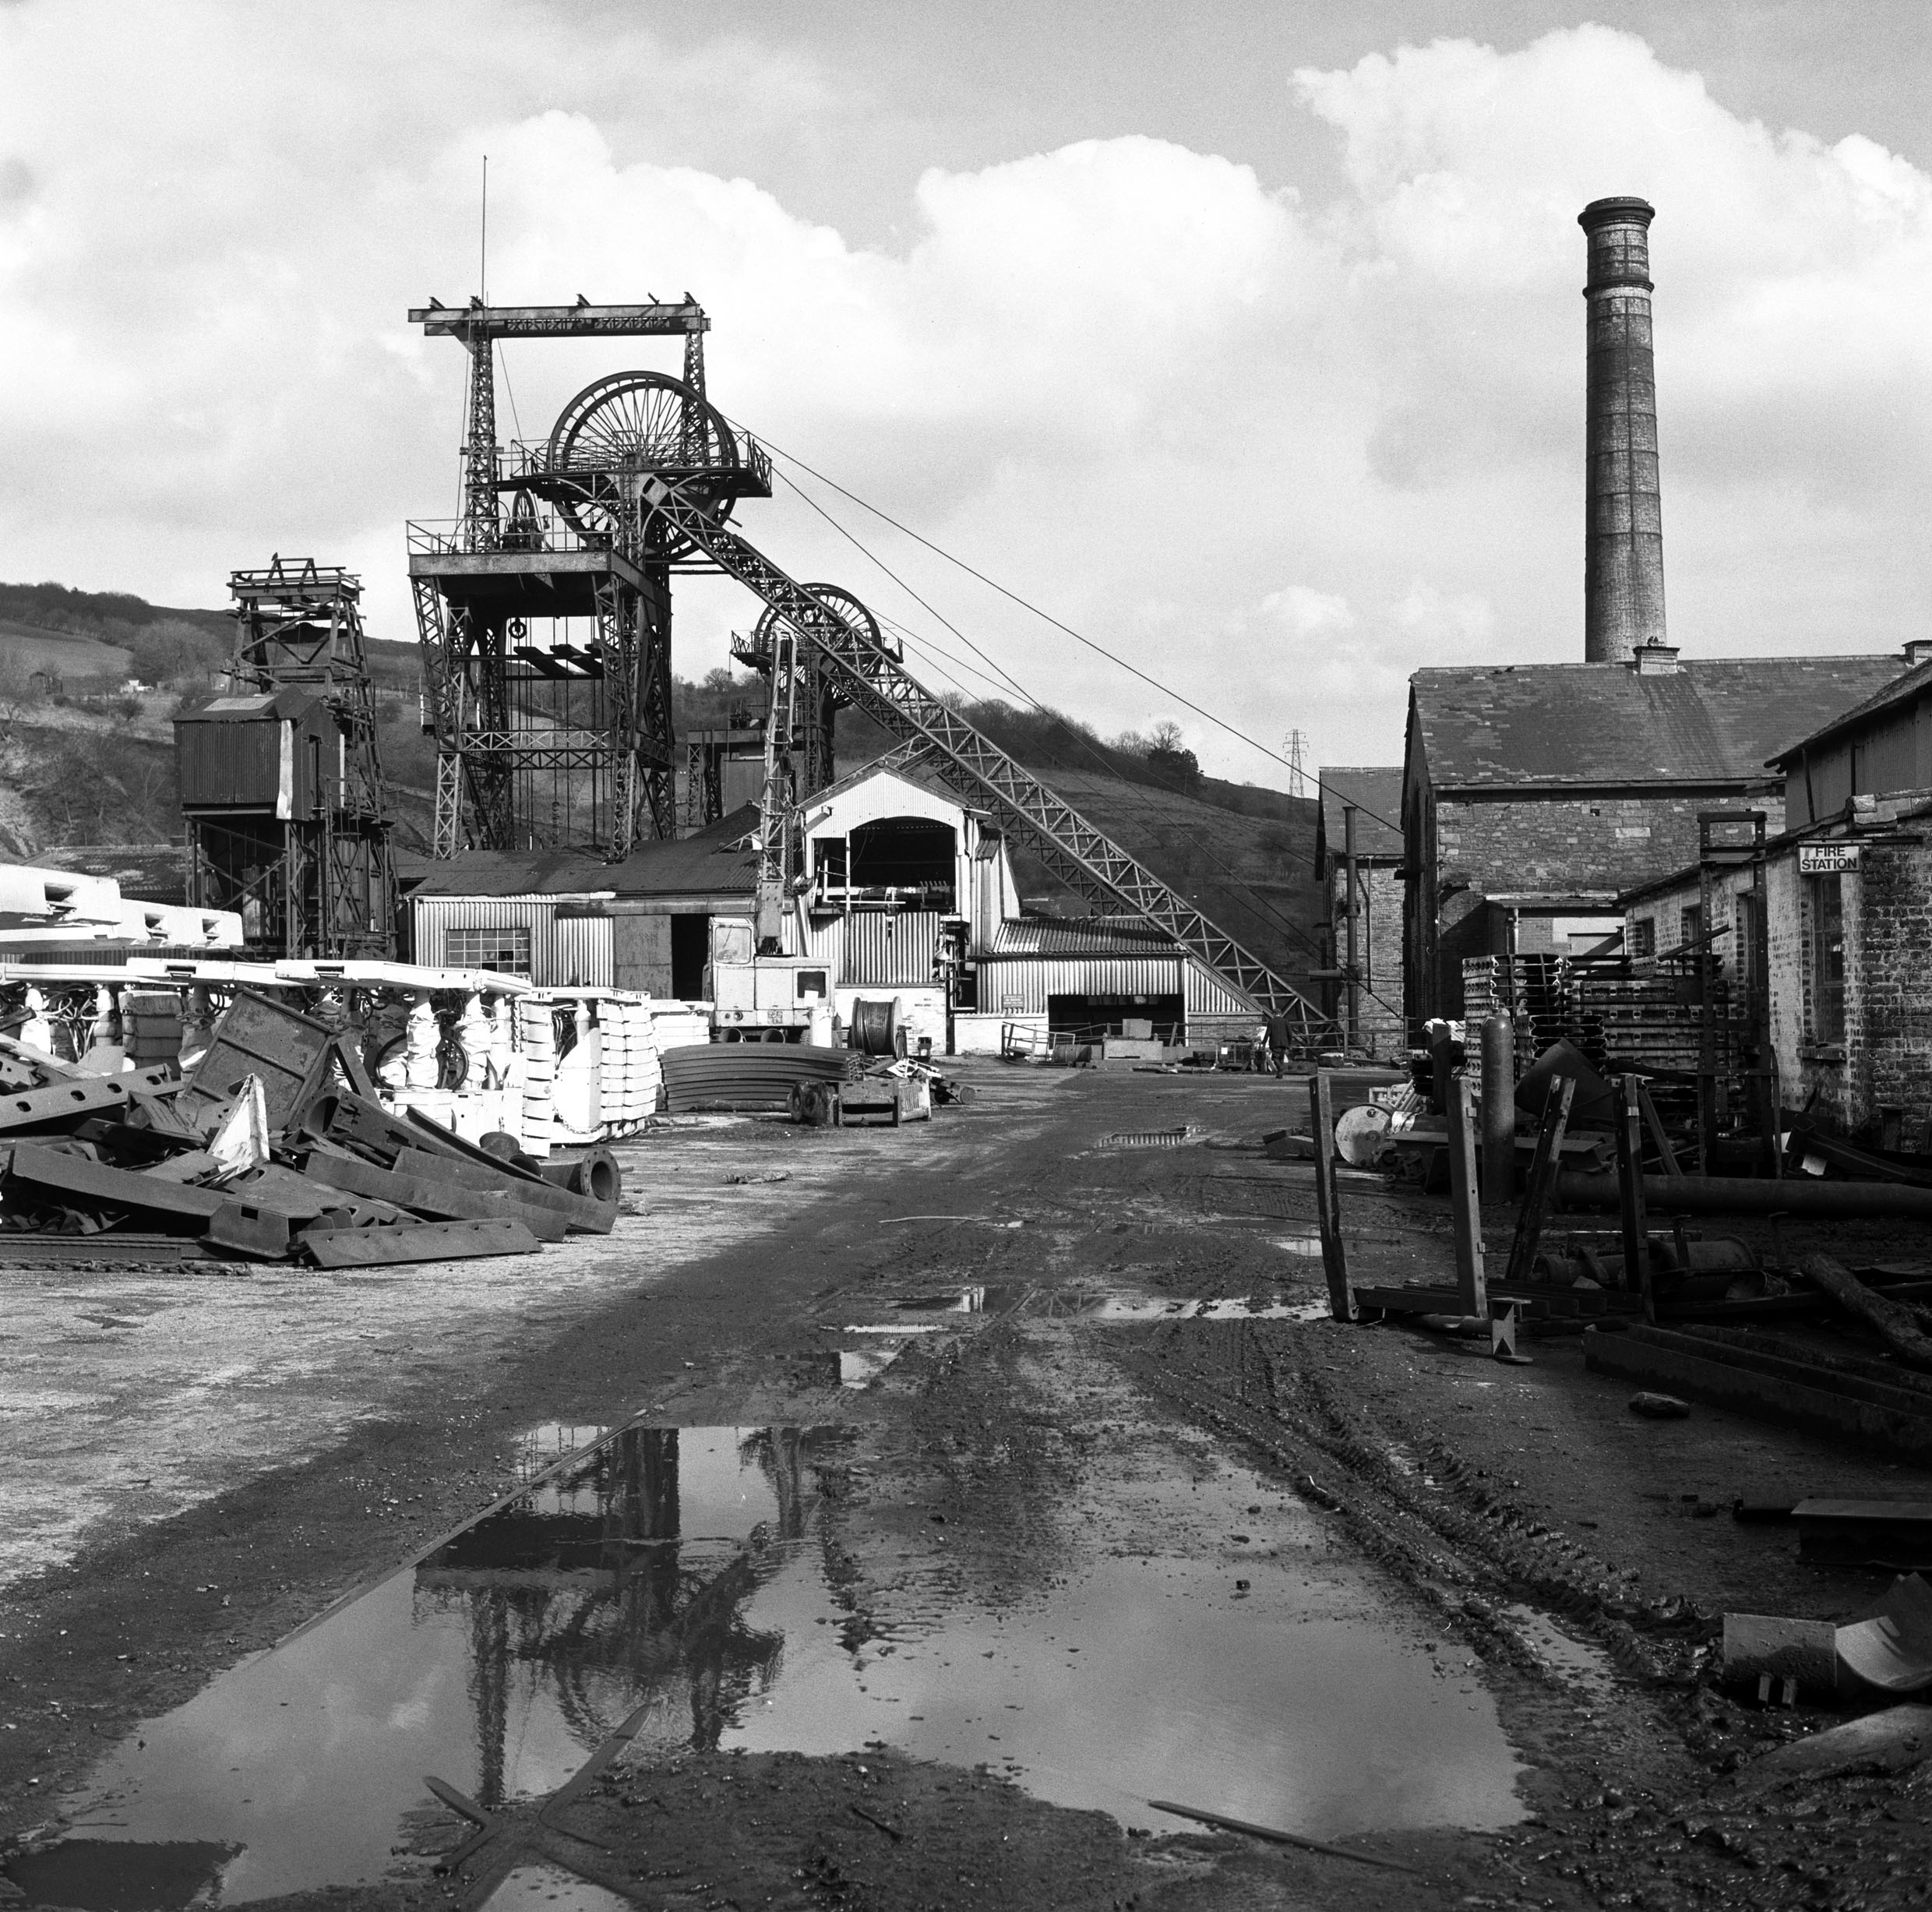 Lewis Merthyr Colliery, 1977, hydraulic roof supports in the yard waiting to be taken underground.